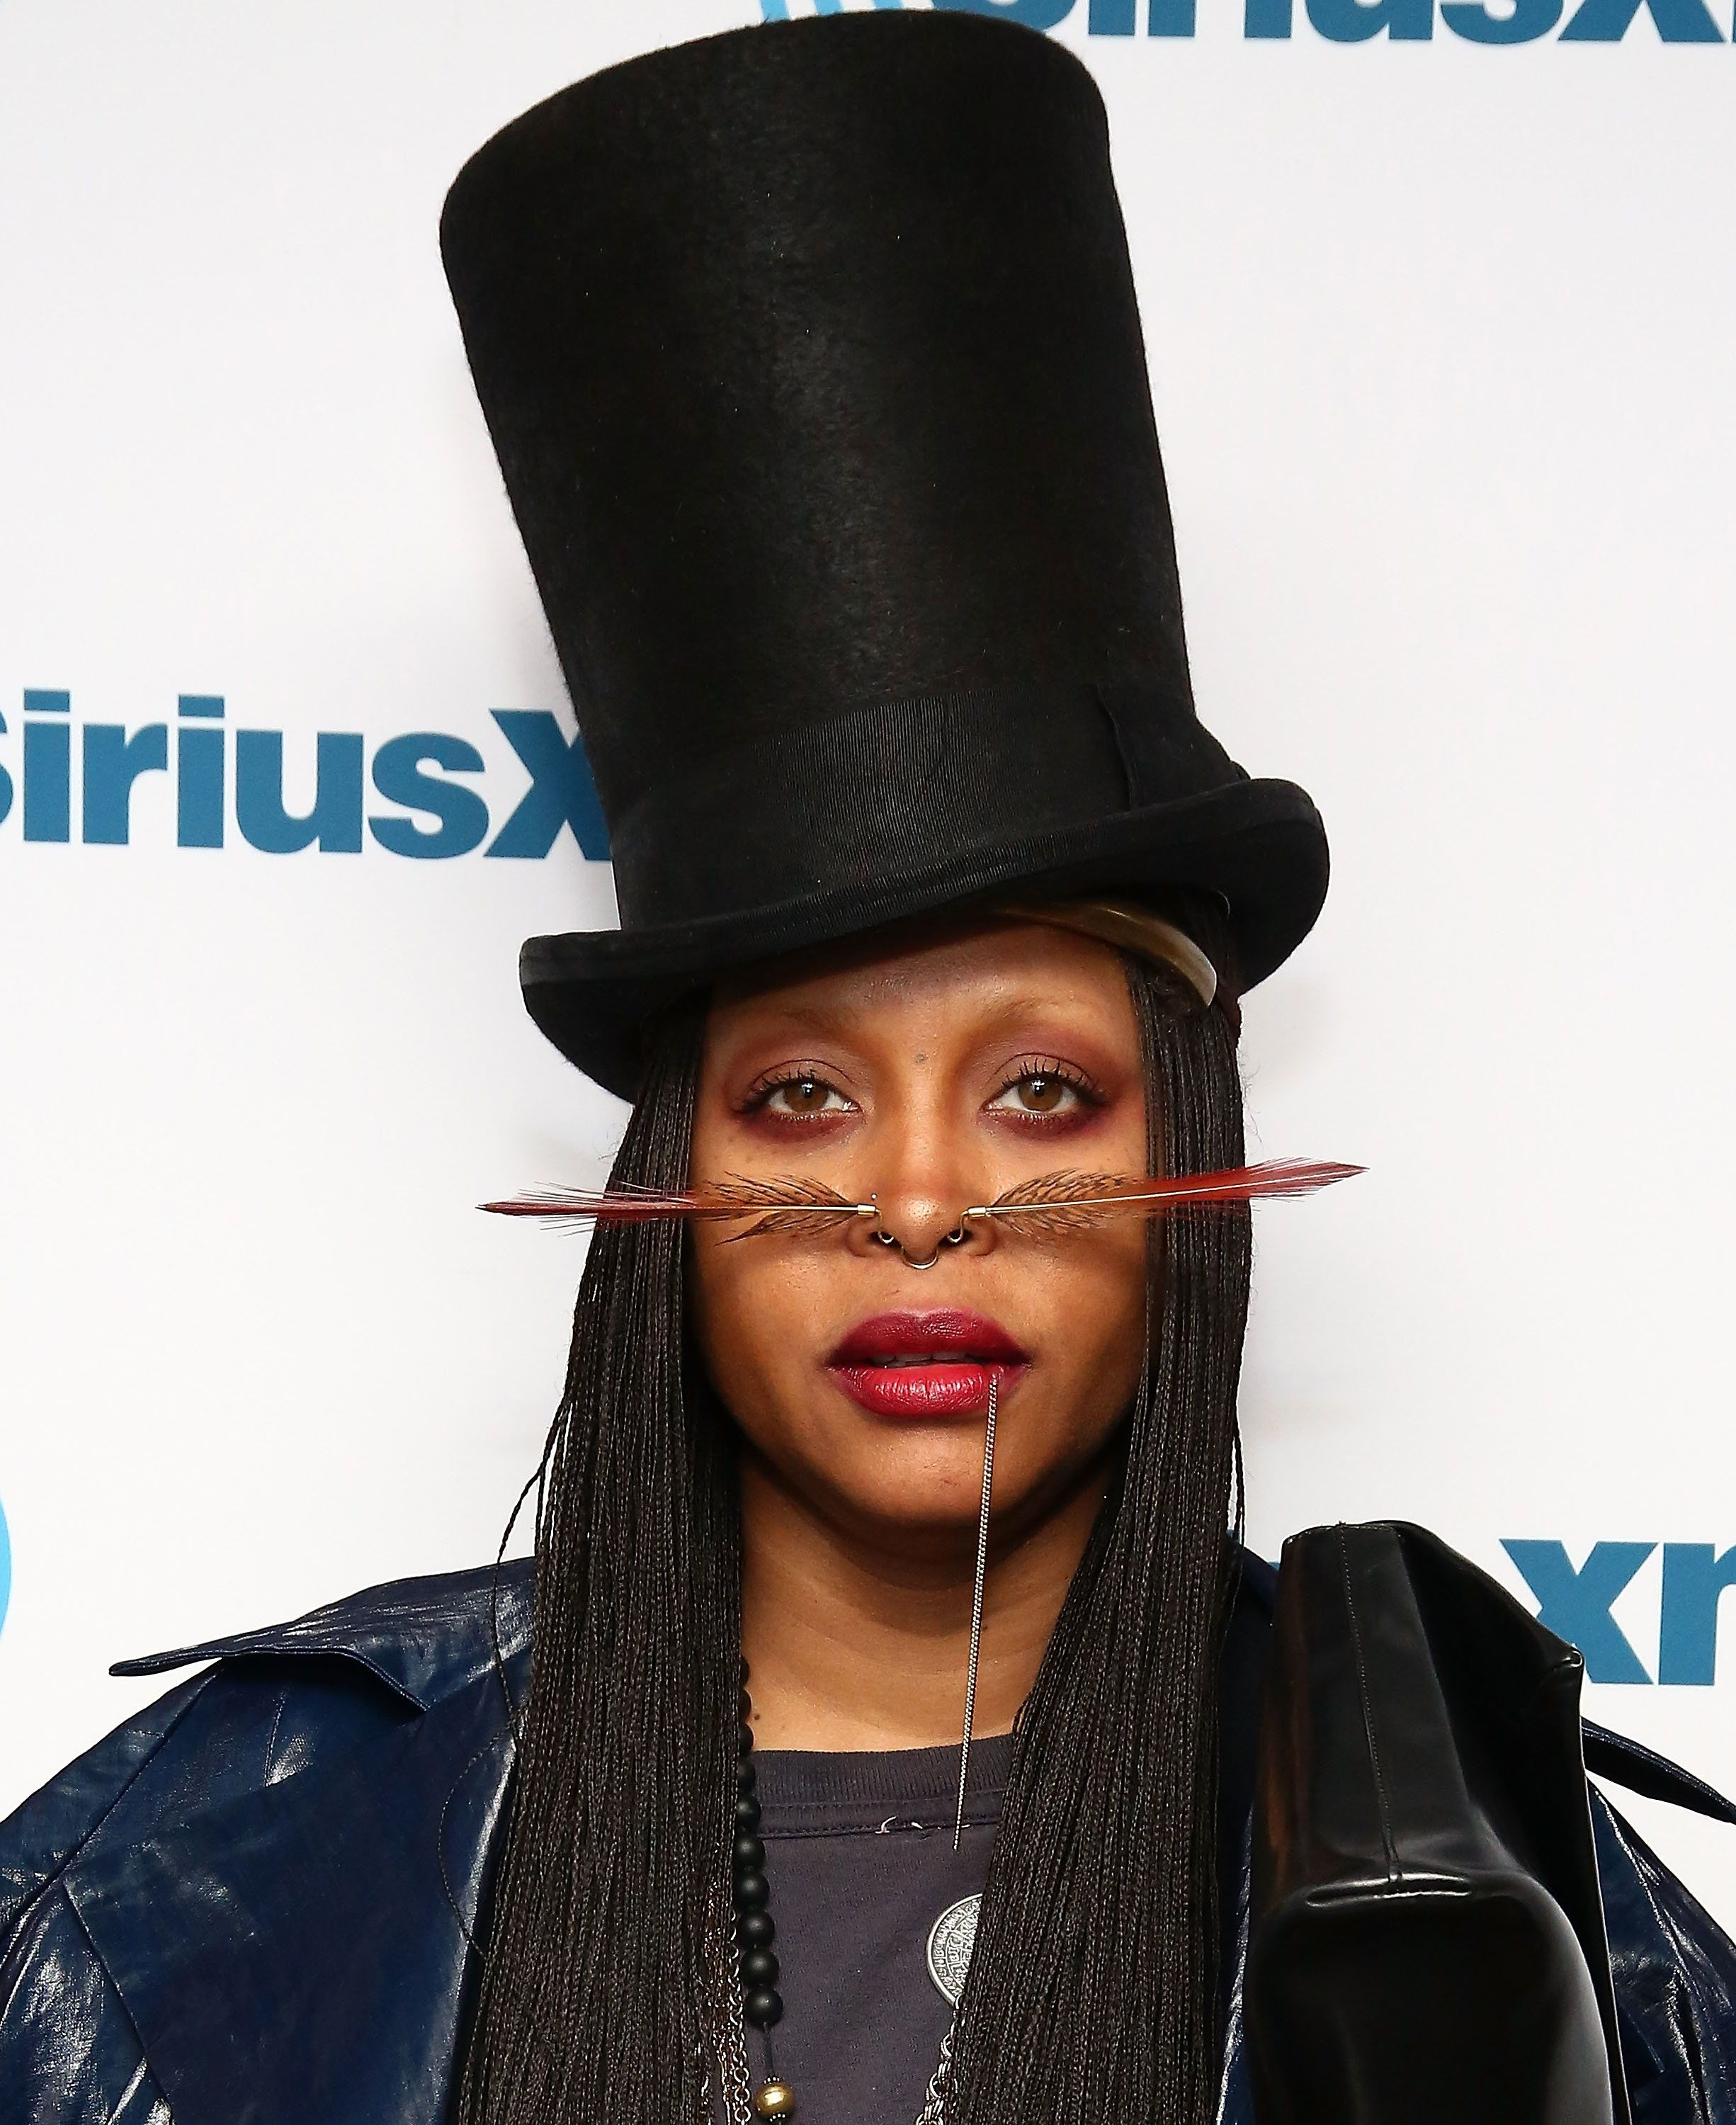 NEW YORK, NY - NOVEMBER 21:  (EXCLUSIVE COVERAGE) Singer Erykah Badu visits the SiriusXM Studios on November 21, 2016 in New York City.  (Photo by Astrid Stawiarz/Getty Images)